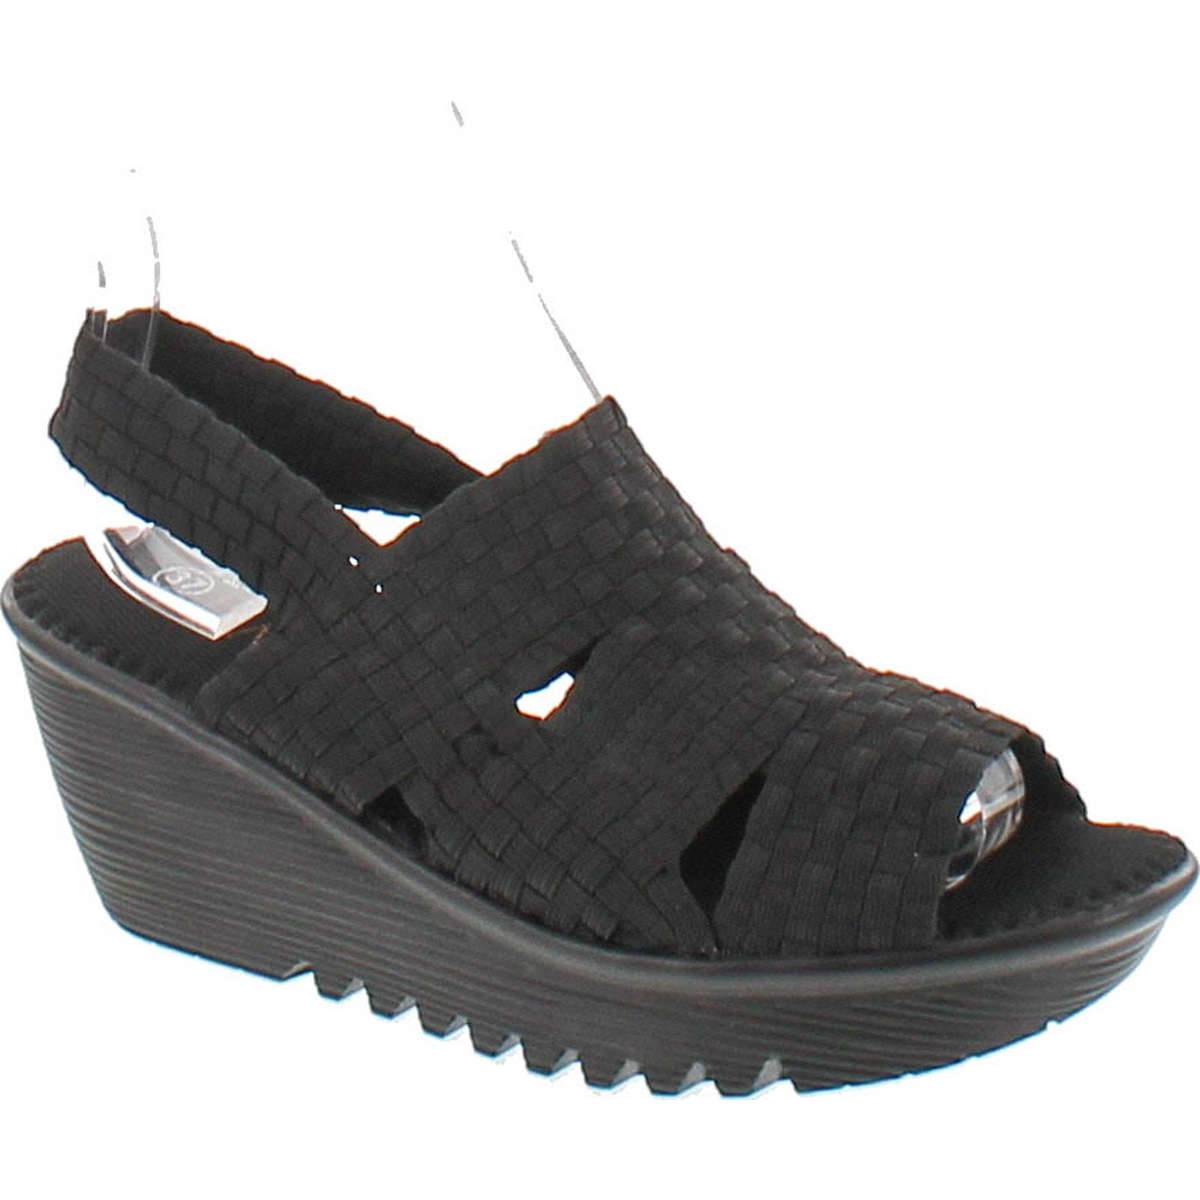 384c52387c7 Bernie Mev Women s Level Sandals - ShoeCenter.com